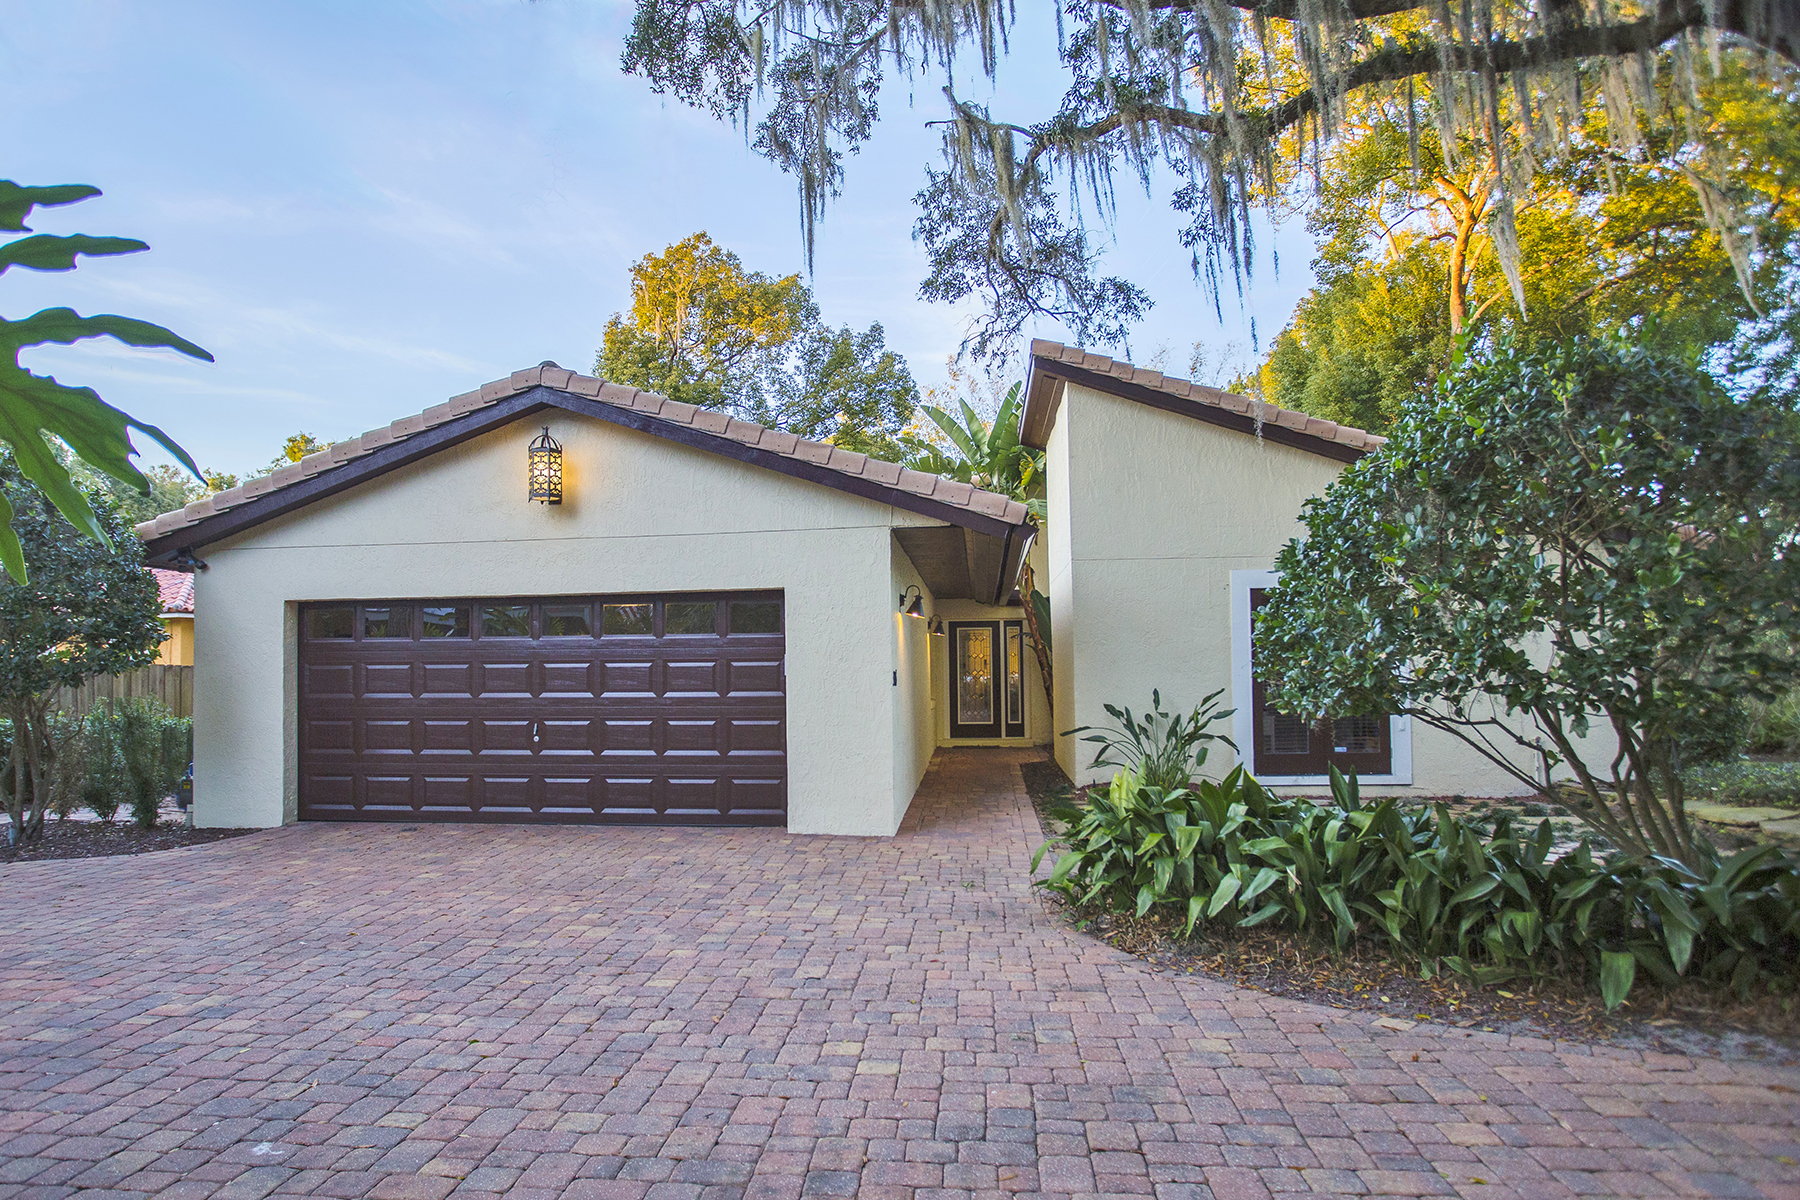 Single Family Home for Sale at 345 Sylvan Blvd , Winter Park, FL 32789 345 Sylvan Blvd Winter Park, Florida, 32789 United States